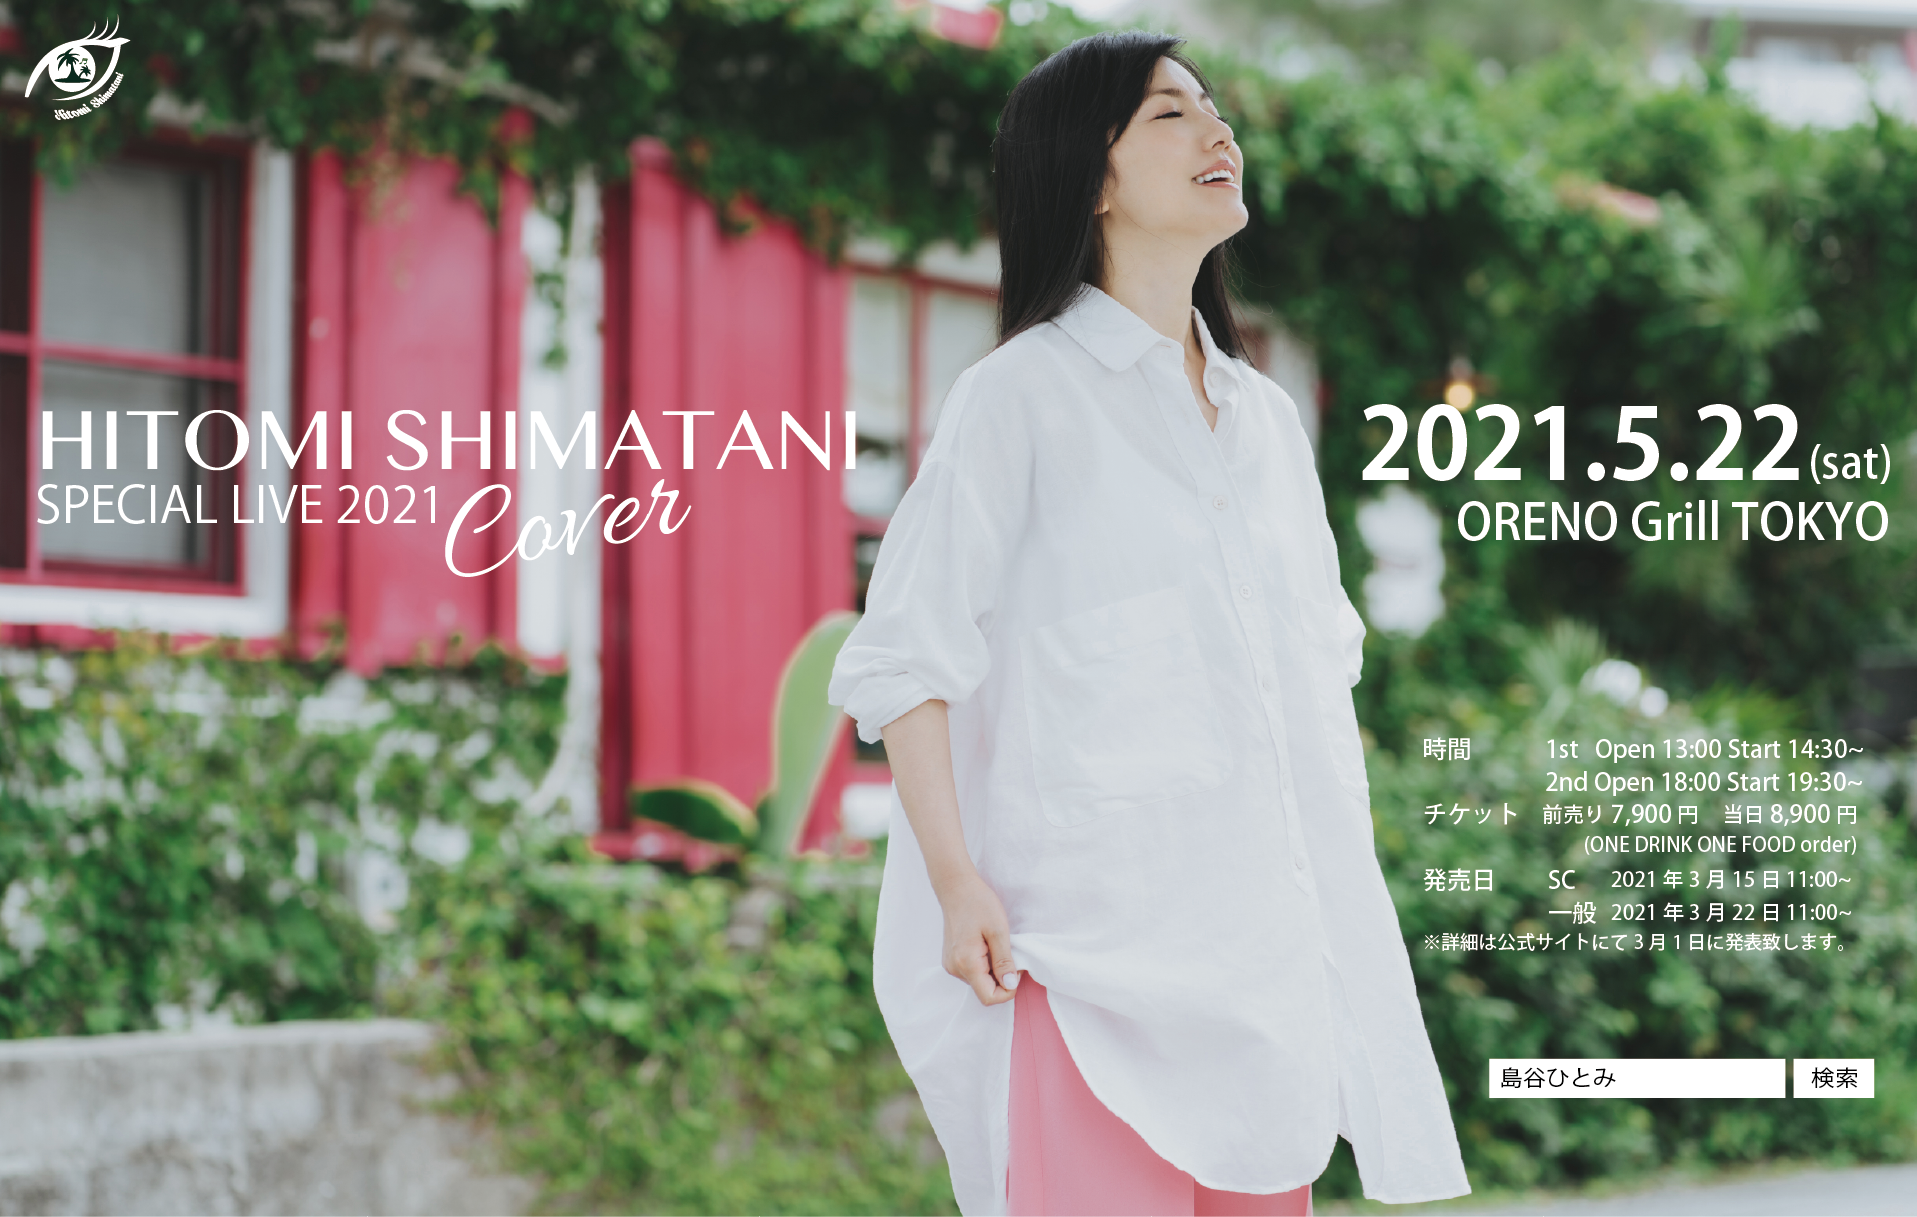 HITOMI SHIMATANI Special live 2021  cover .png